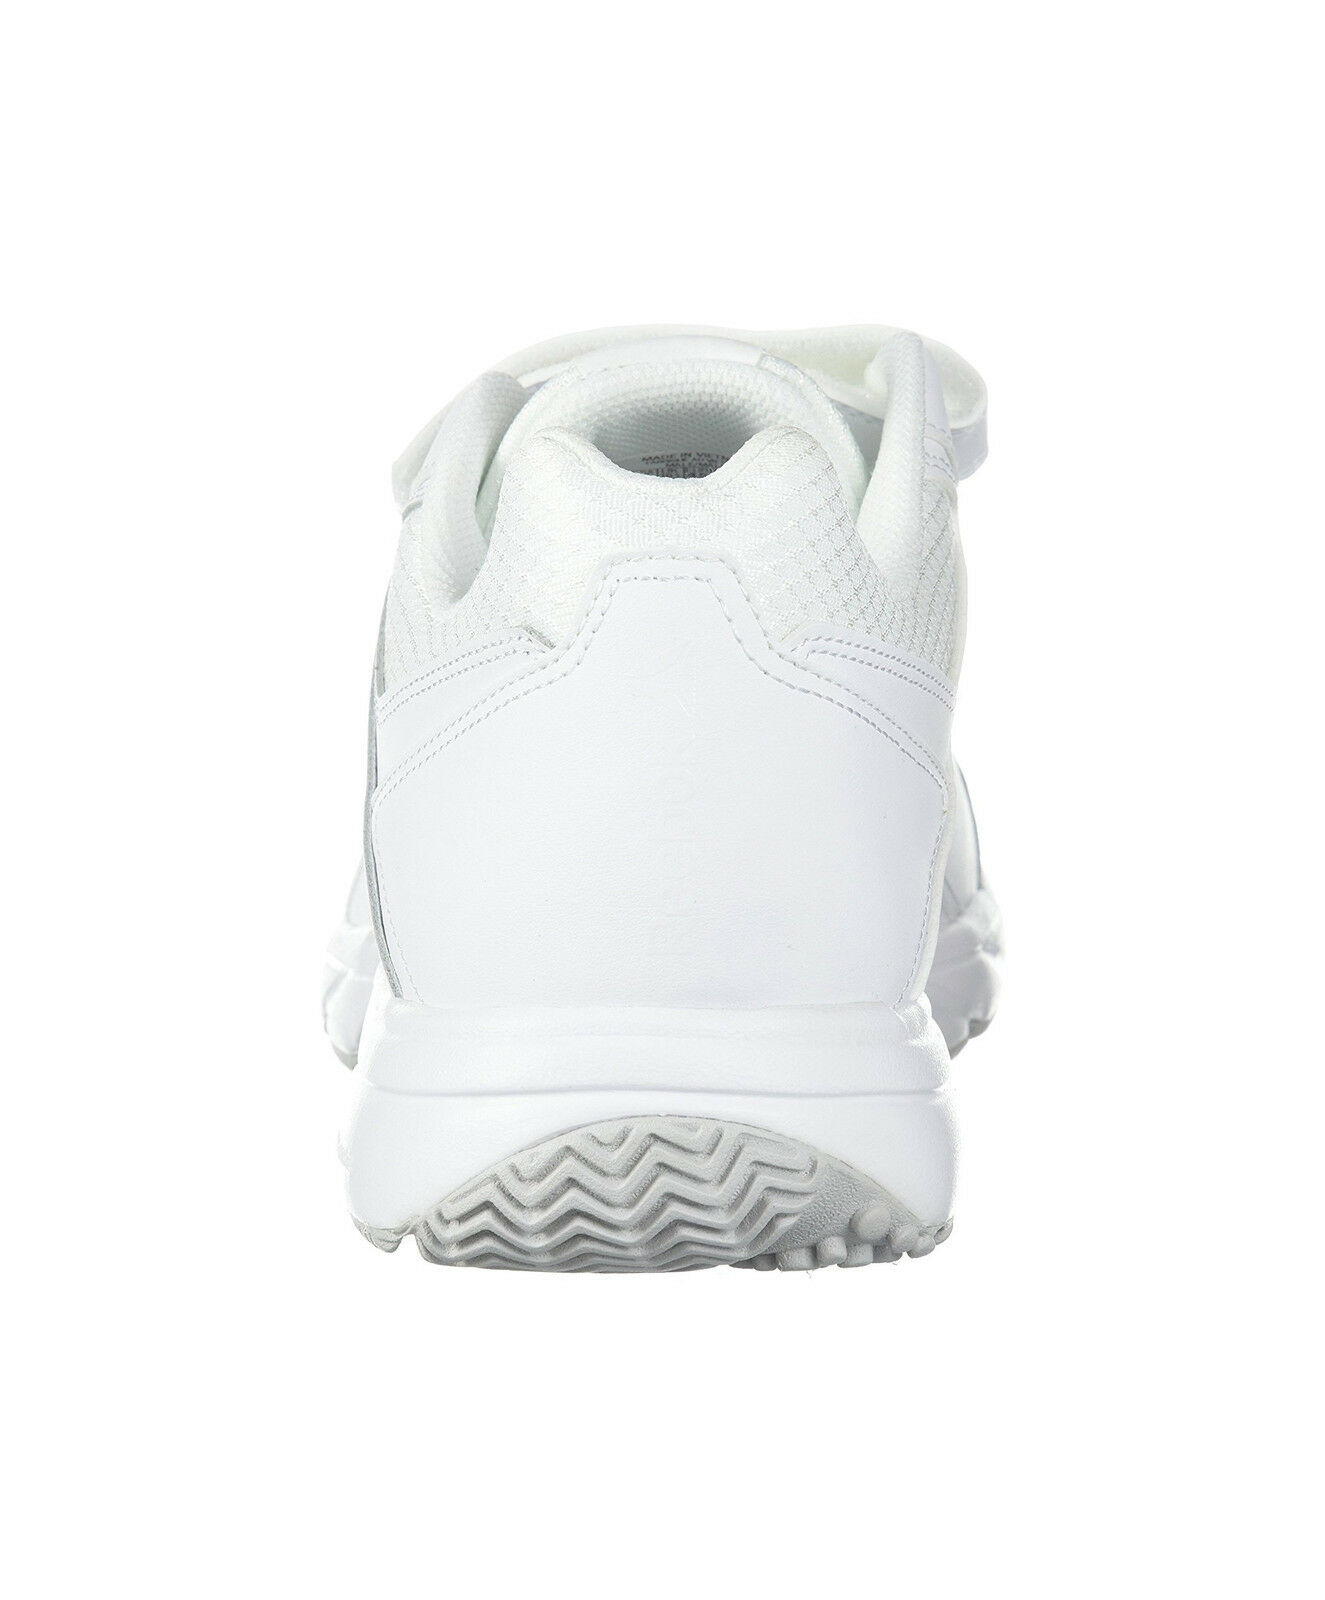 REEBOK Trainer Work N Cushion 3.0 Kc Weiß Cross Trainer REEBOK Sneakers Athletic Men Schuhes cbf75f